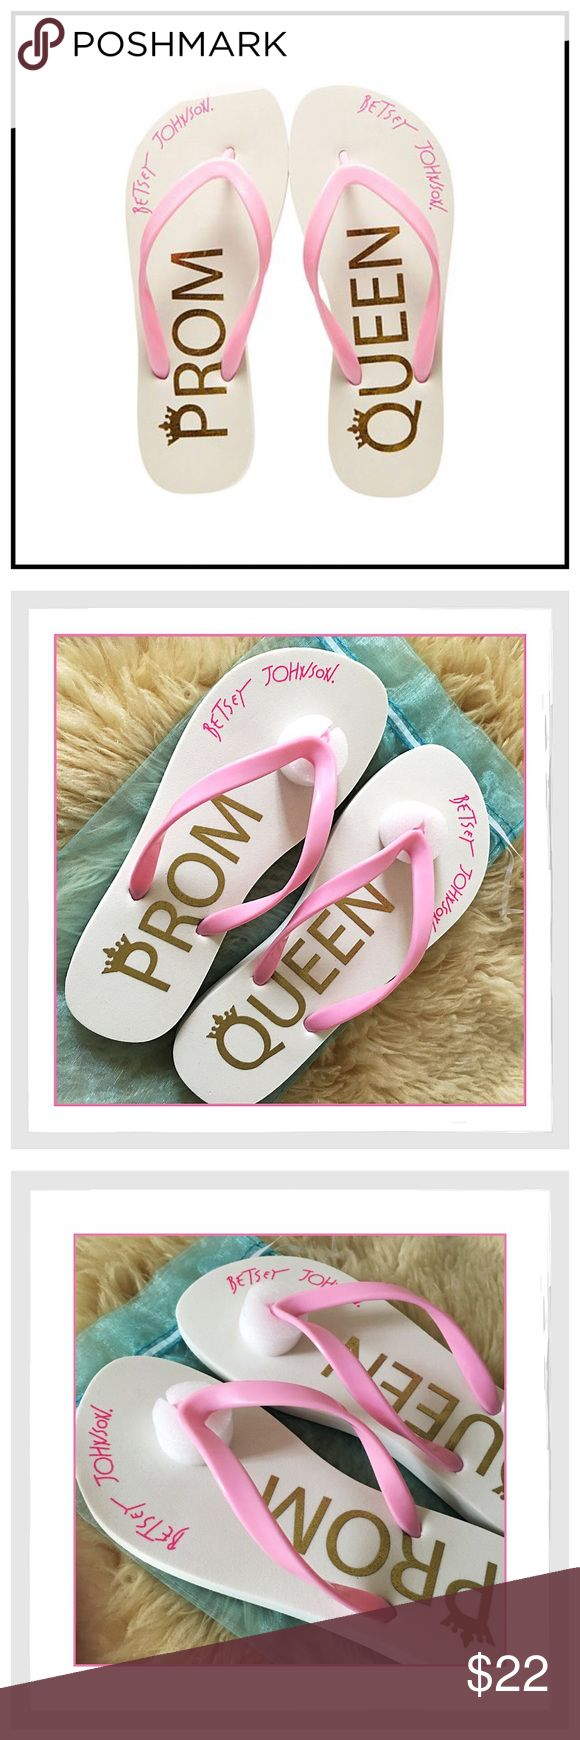 "💋✨Betsey Johnson 'Amy' Sandals ""Prom Queen""✨💋 💋✨Betsey Johnson 'Amy' Sandals ""Prom Queen""✨💋A Fun Addition To Your Special Day✨'Prom Queen' Graphic On Footbed✨Round Open-Toe Slip-On Thong Sandals✨Ribber Upper/Manmade Sole✨New In Original Box✨Comes With A Blue Dust Bag✨Size 6✨ Betsey Johnson Shoes Sandals"